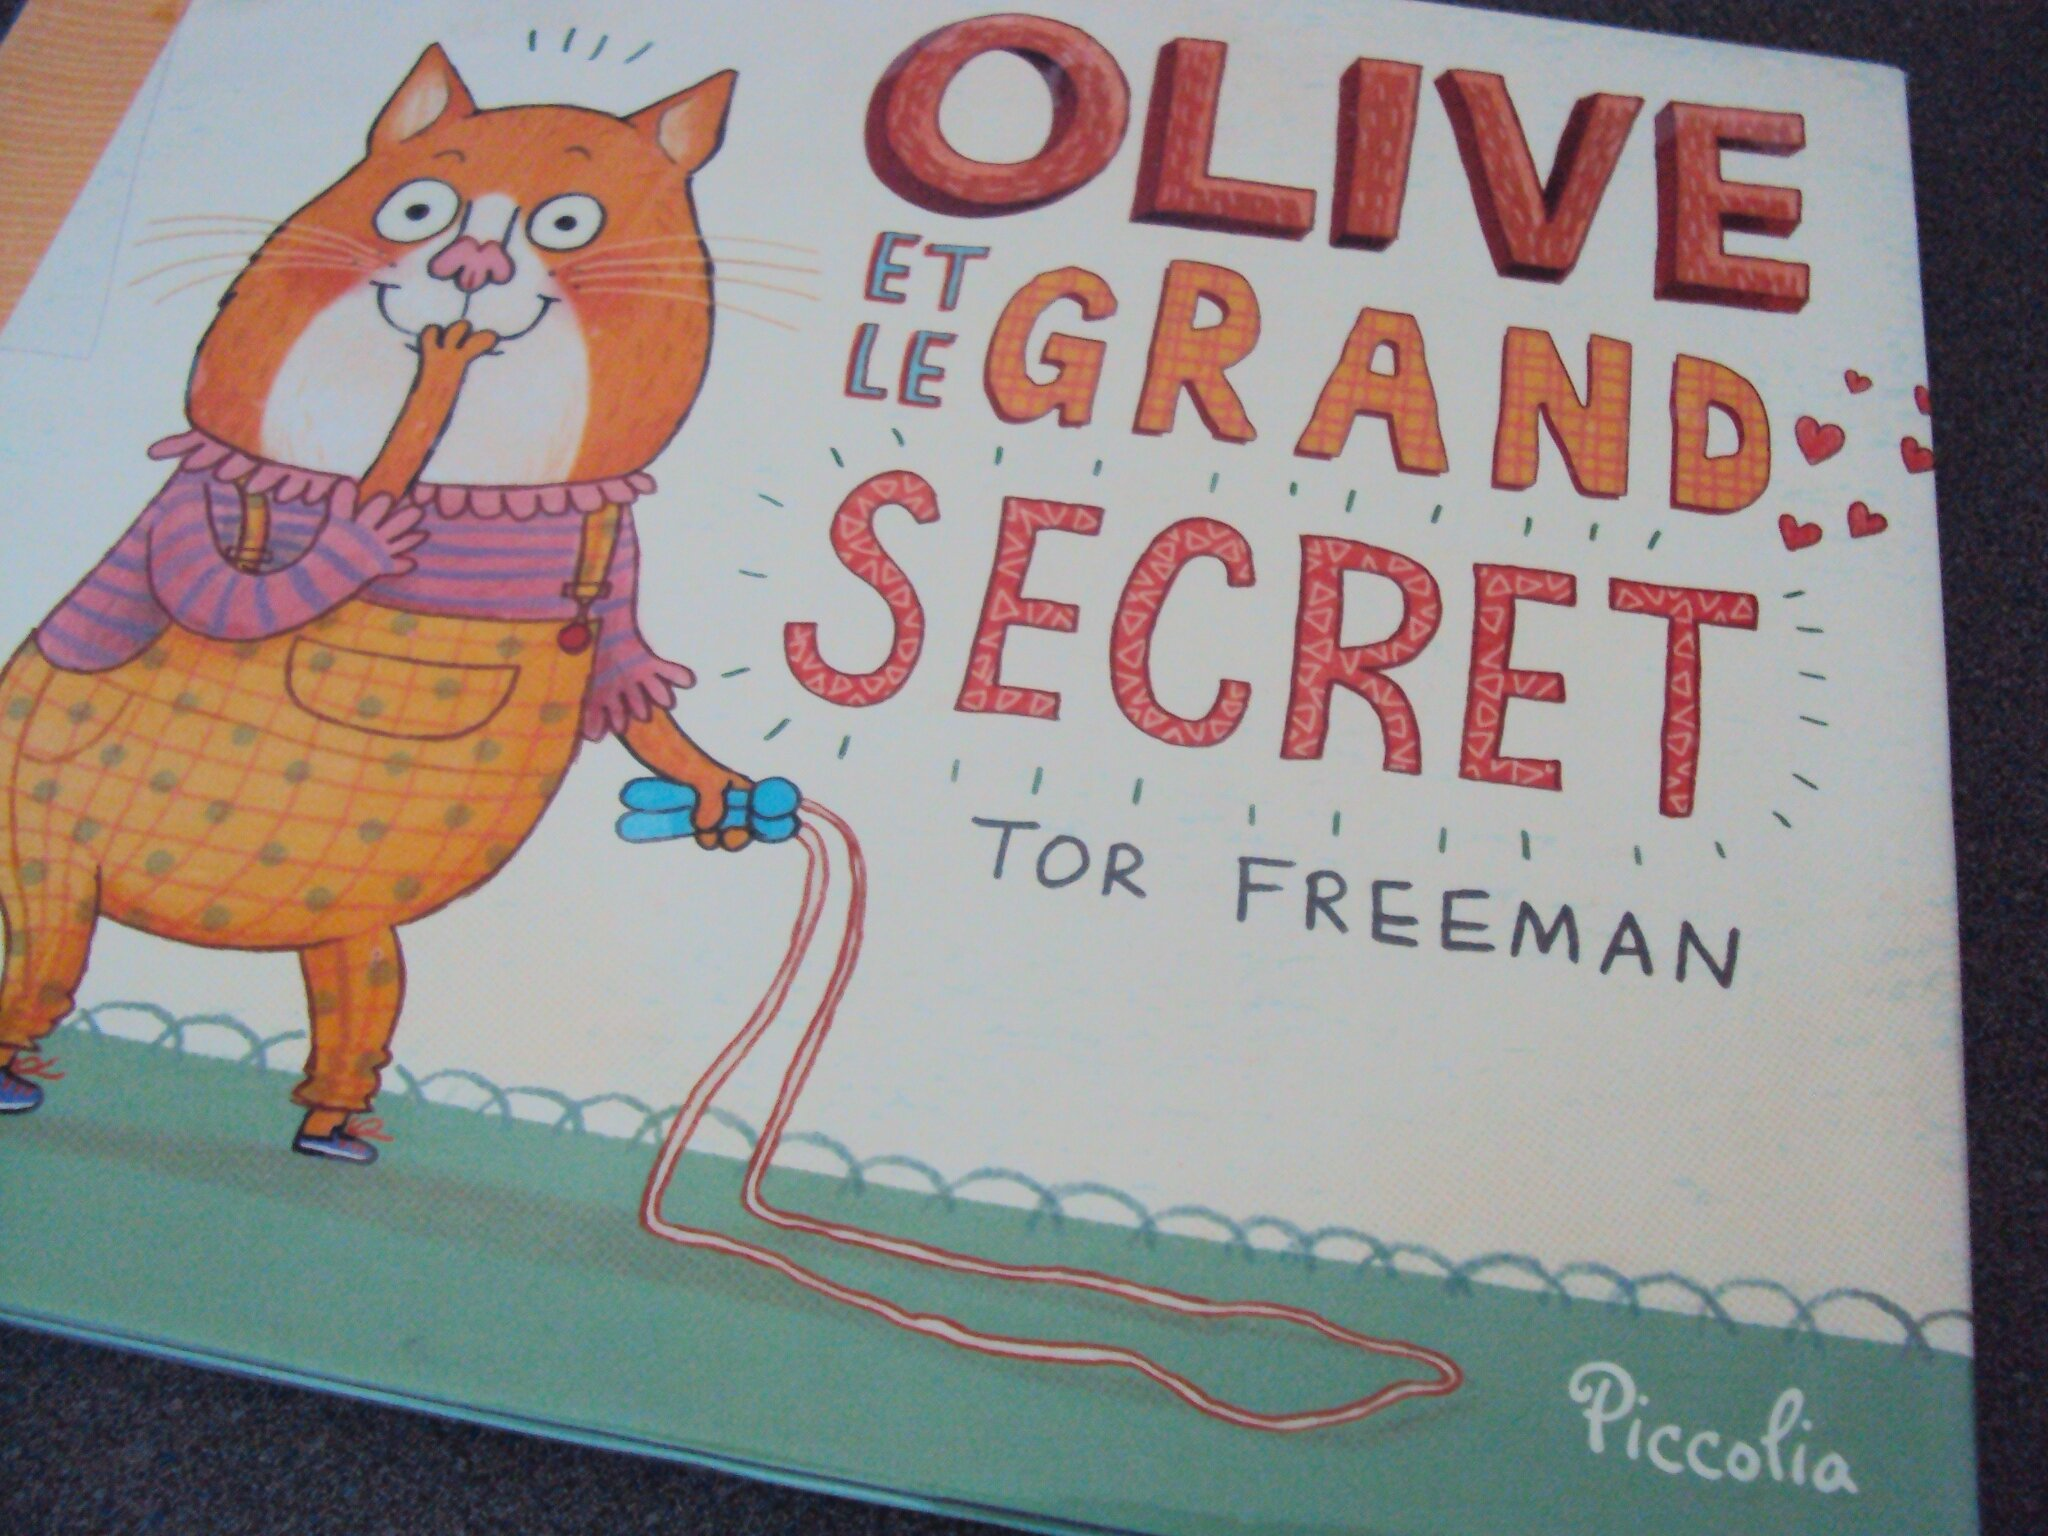 Olive et le grand secret de Tor Freeman, éditions Piccolia